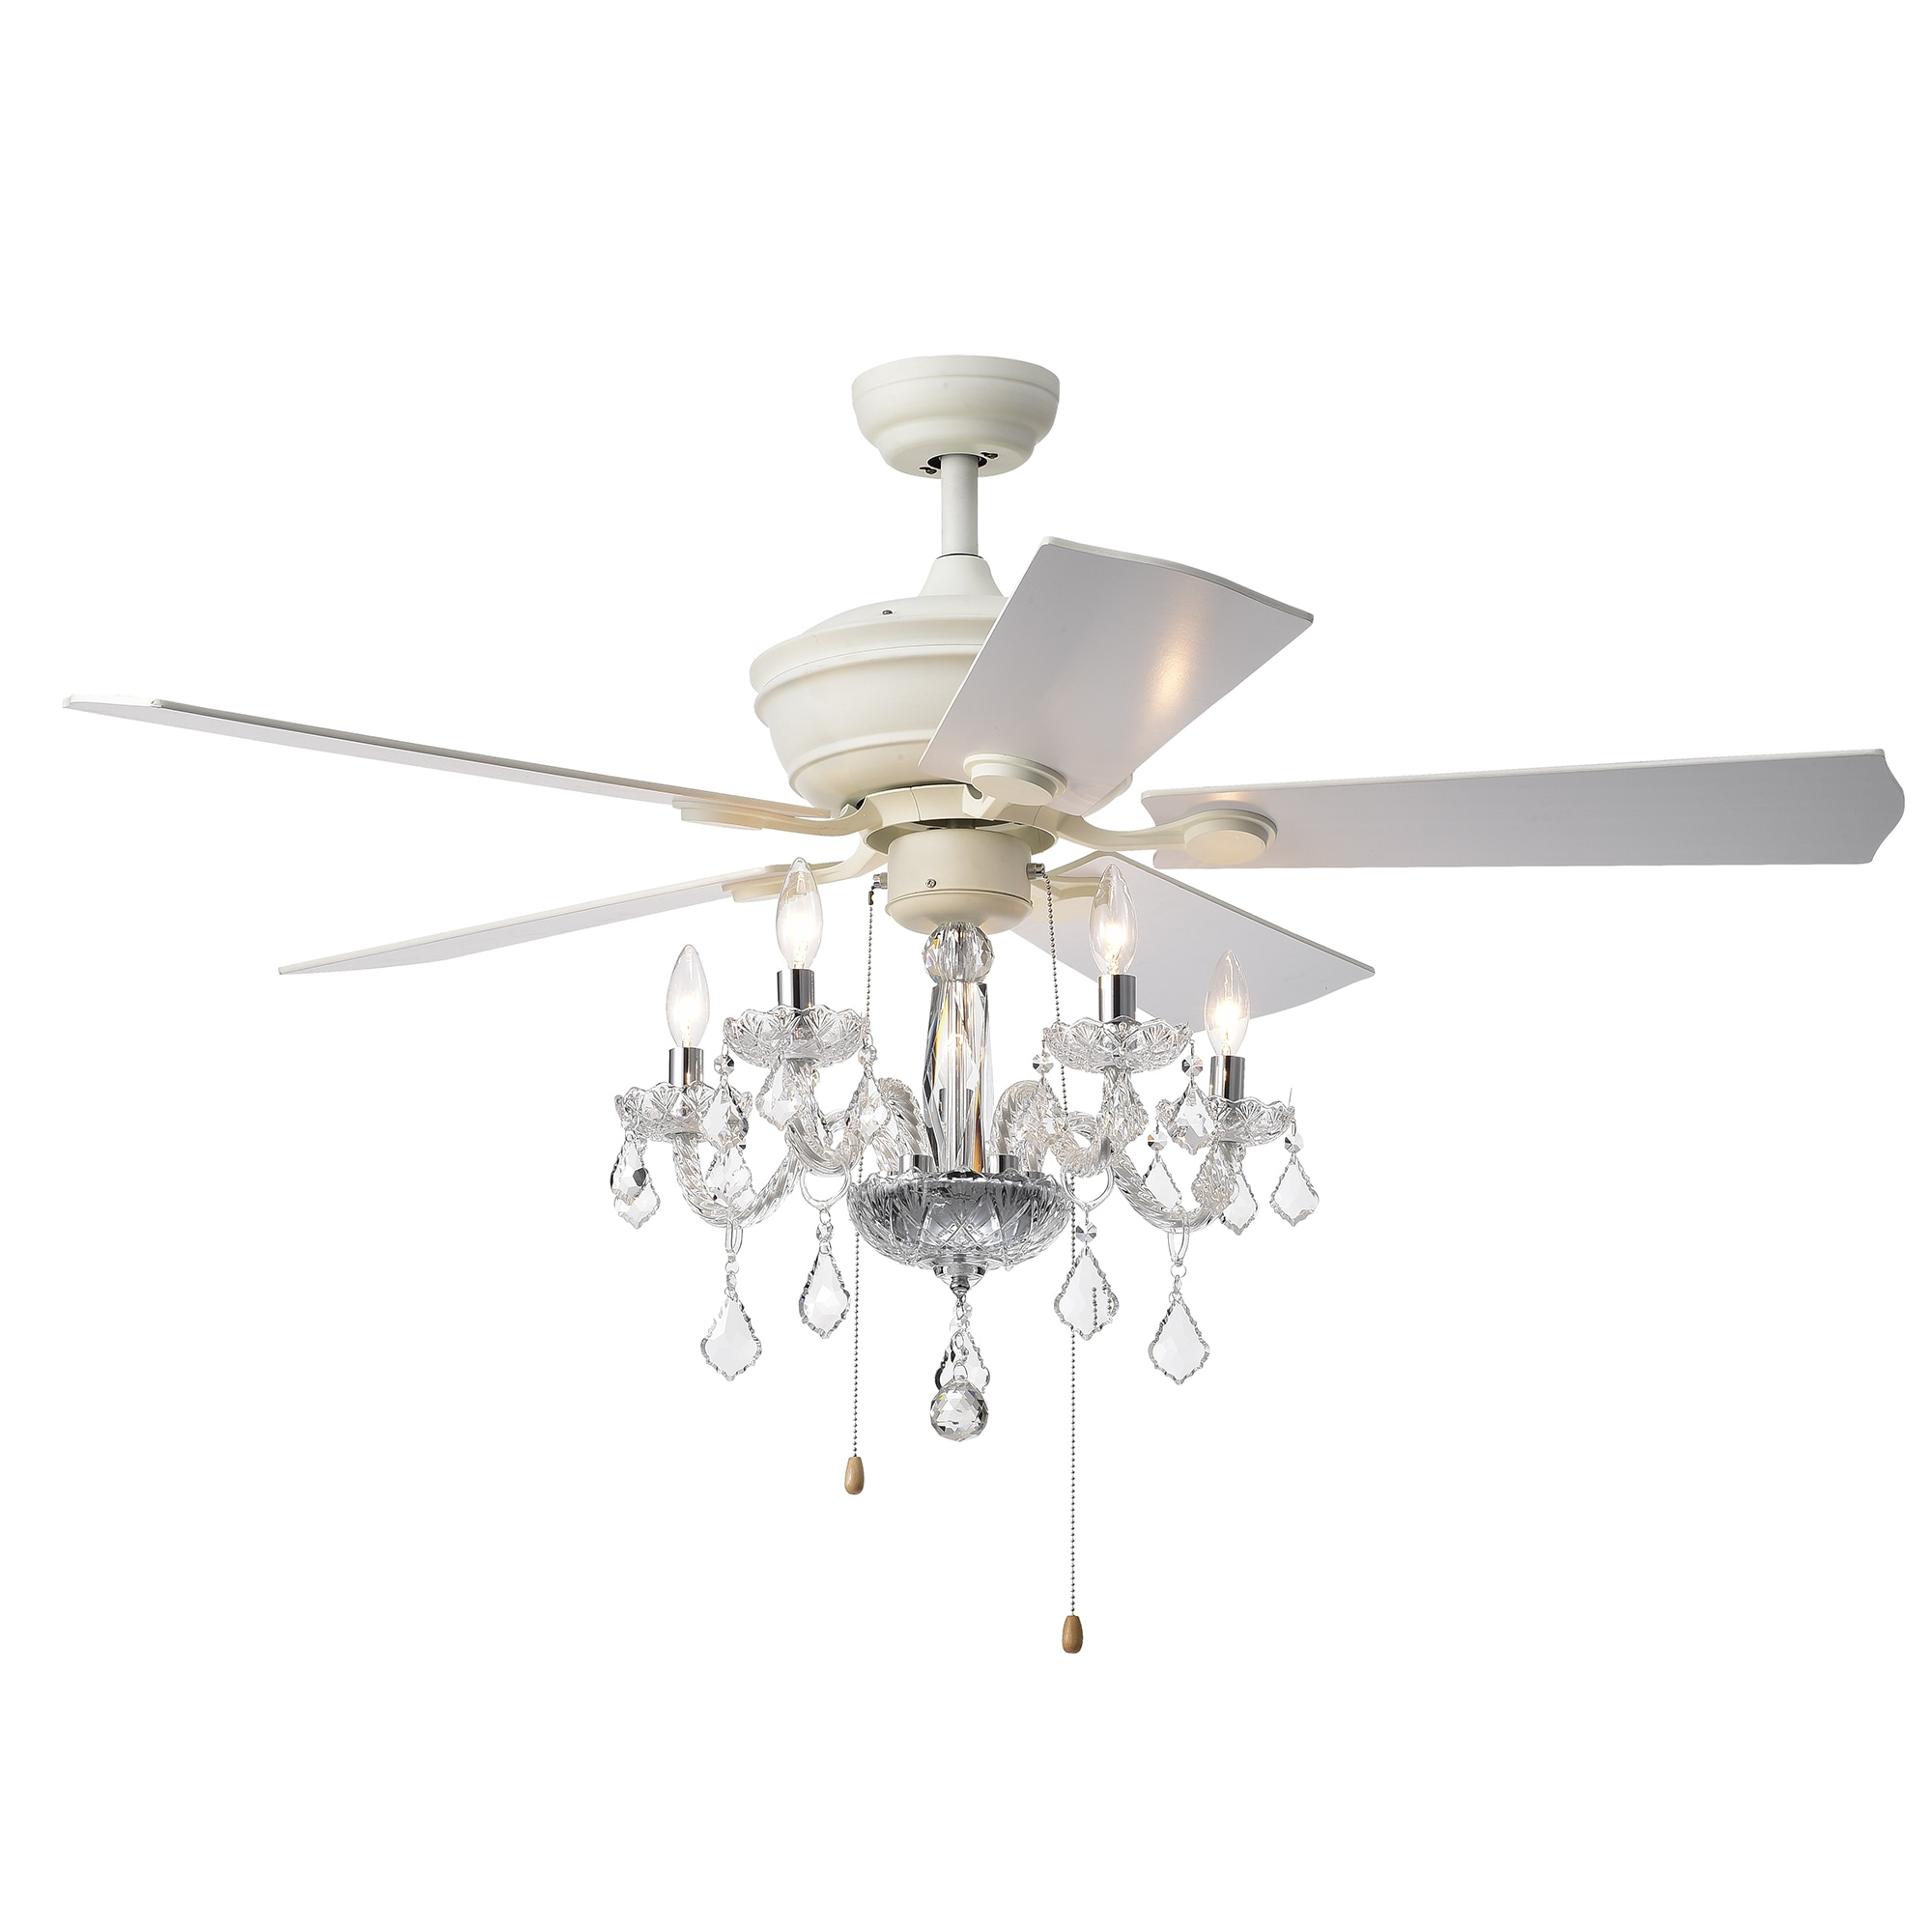 ideas ceiling bulb beautiful fans wattage limit with light bulbs fan bay hampton of regular